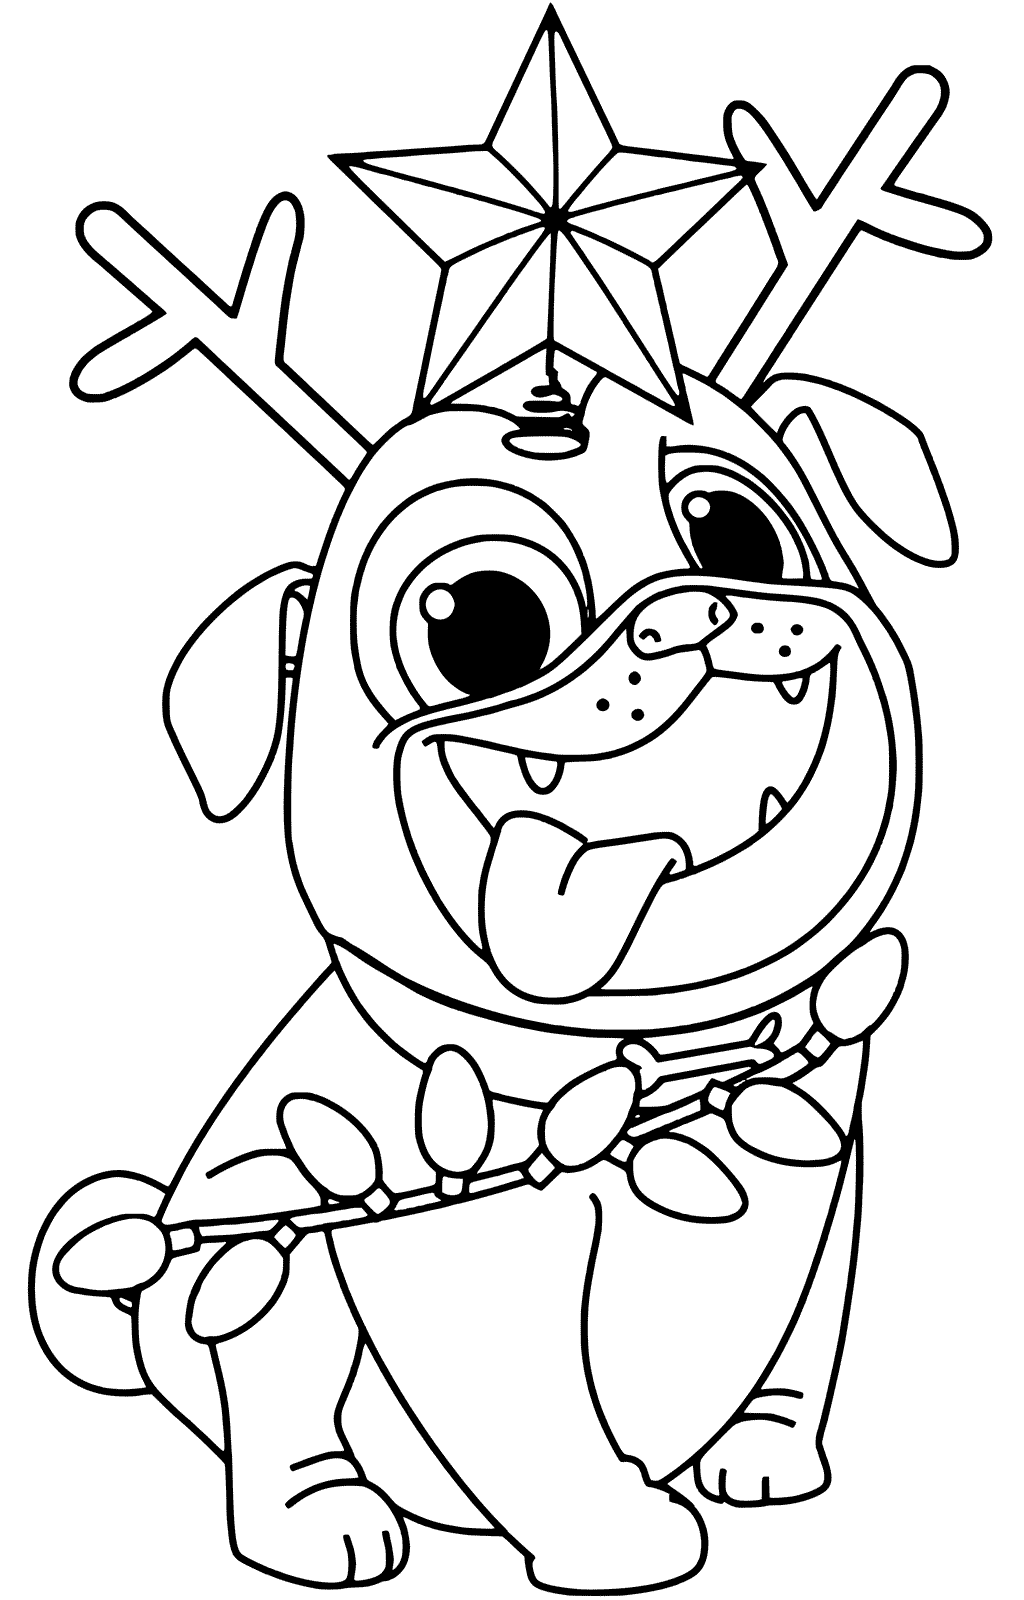 colouring dog dog coloring pages printable coloring pages of dogs for dog colouring